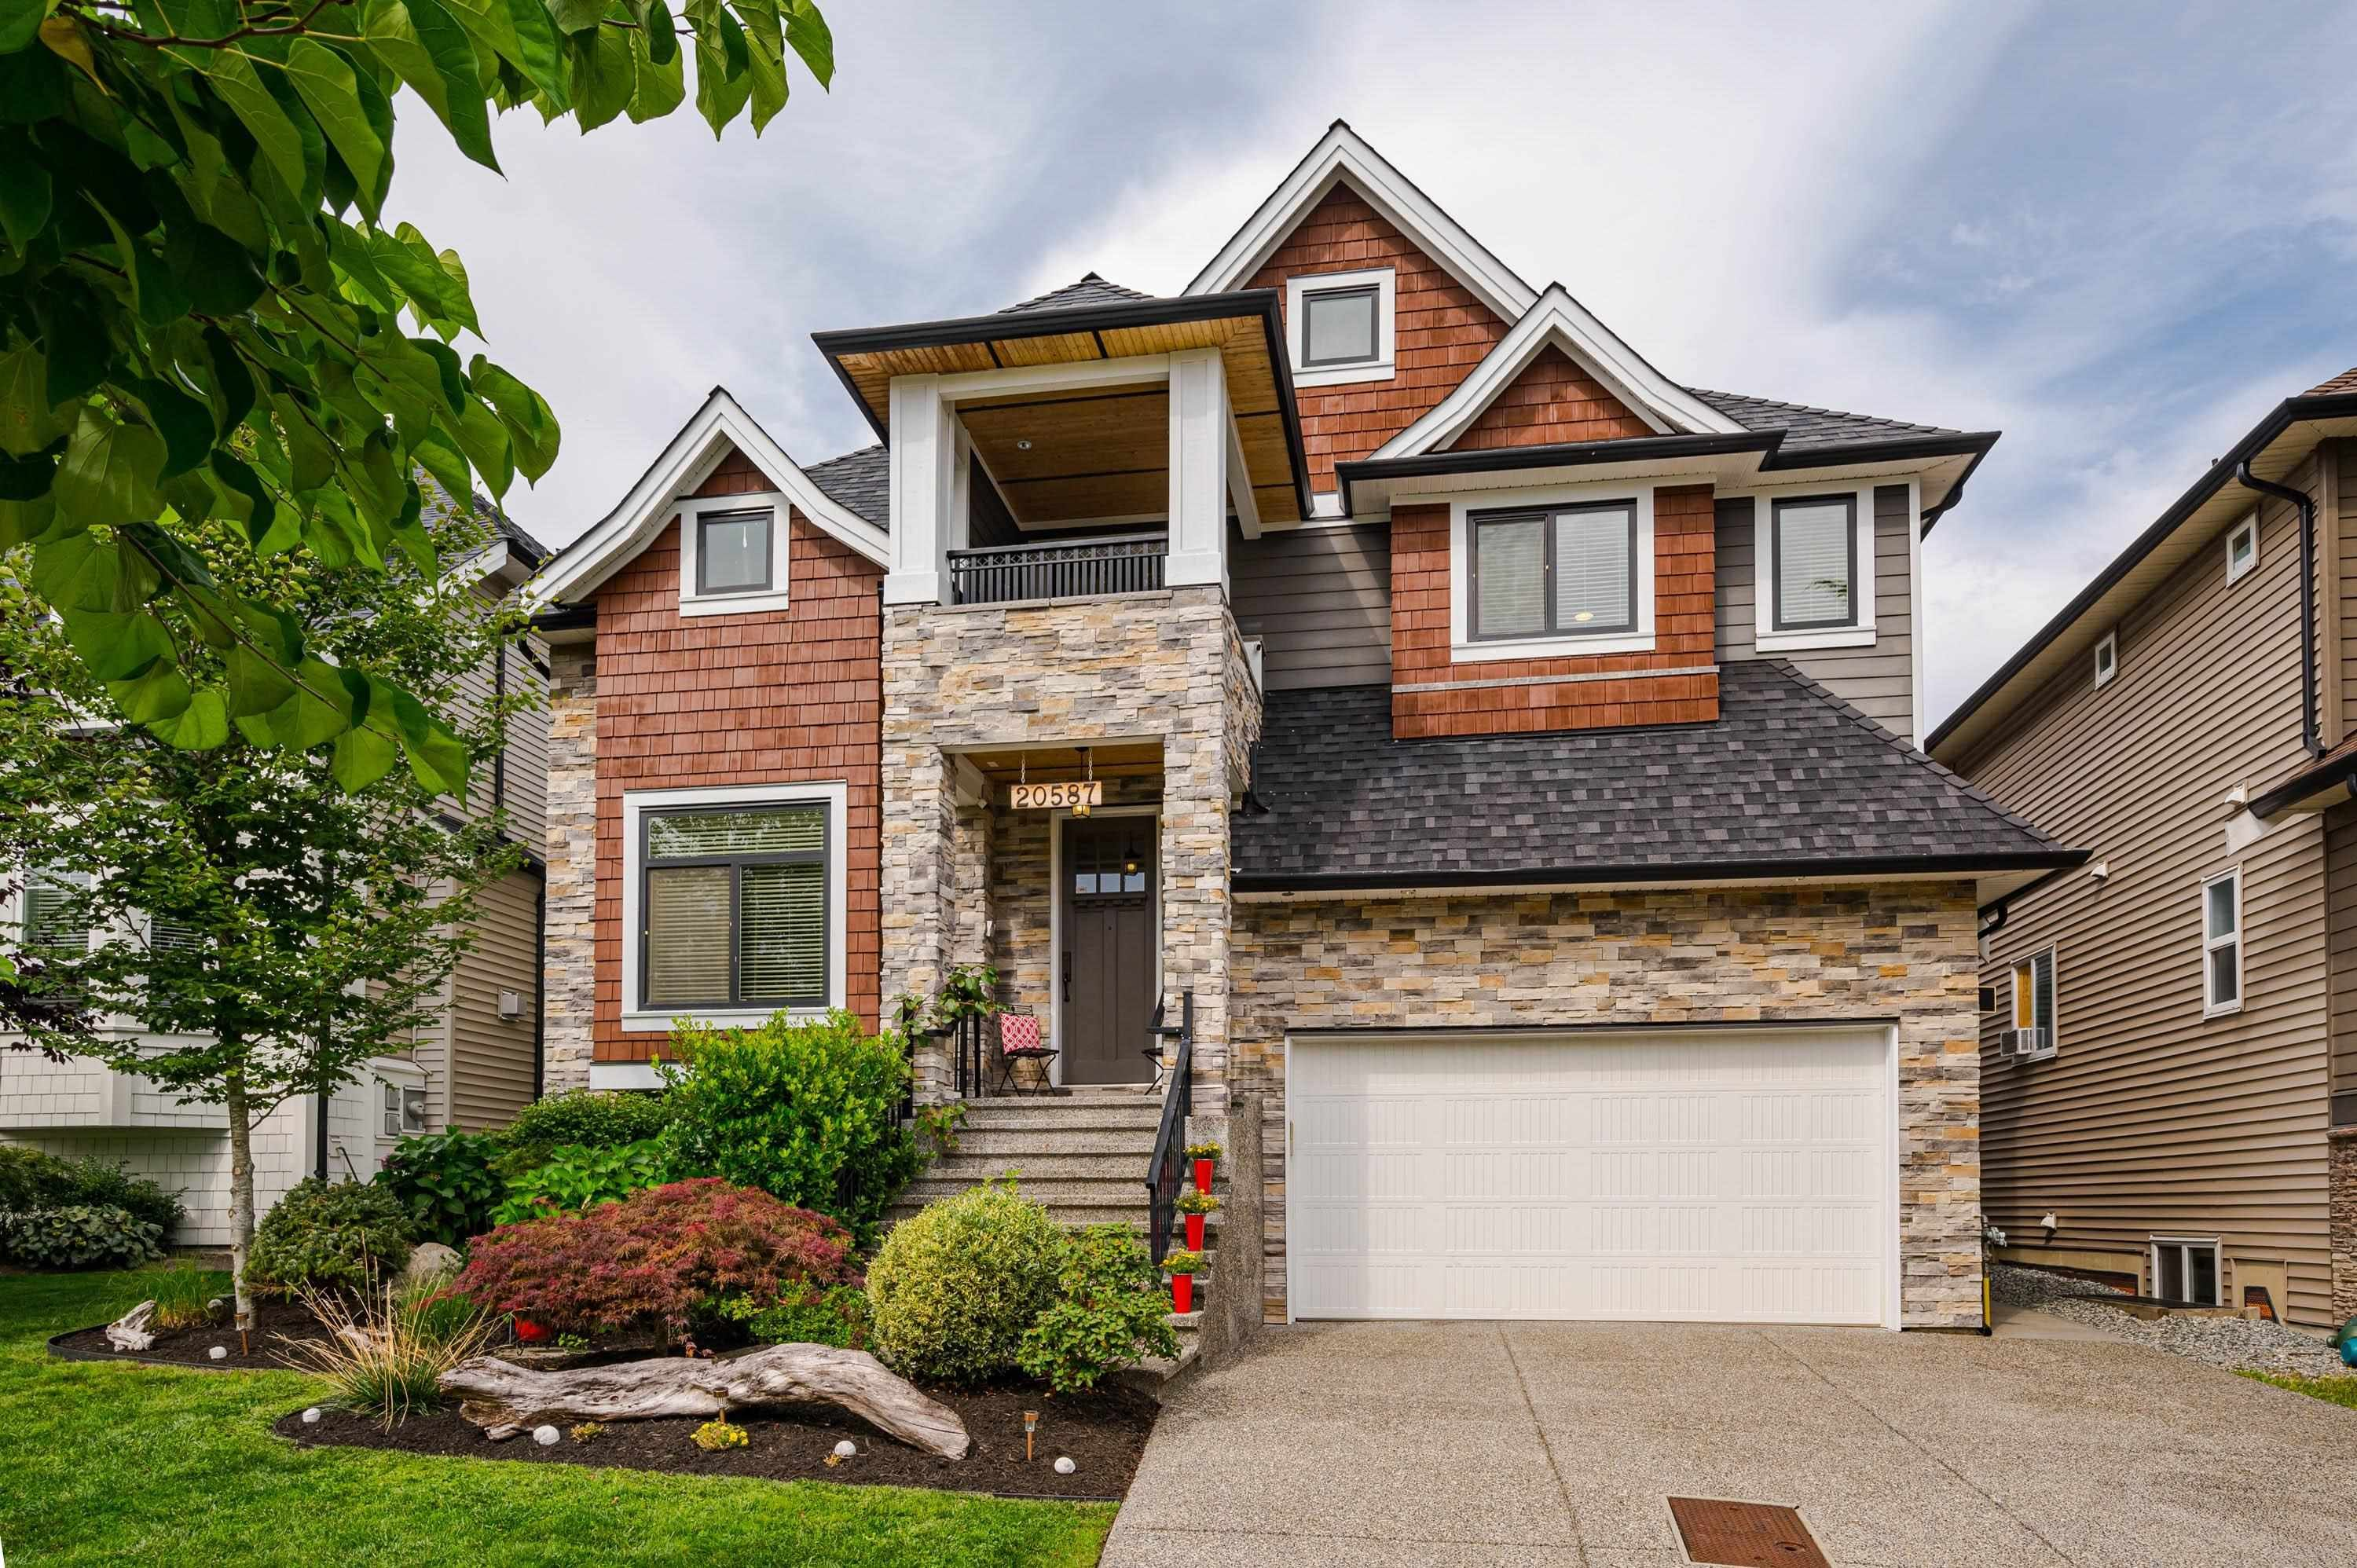 """Main Photo: 20587 68 Avenue in Langley: Willoughby Heights House for sale in """"Tanglewood"""" : MLS®# R2614735"""